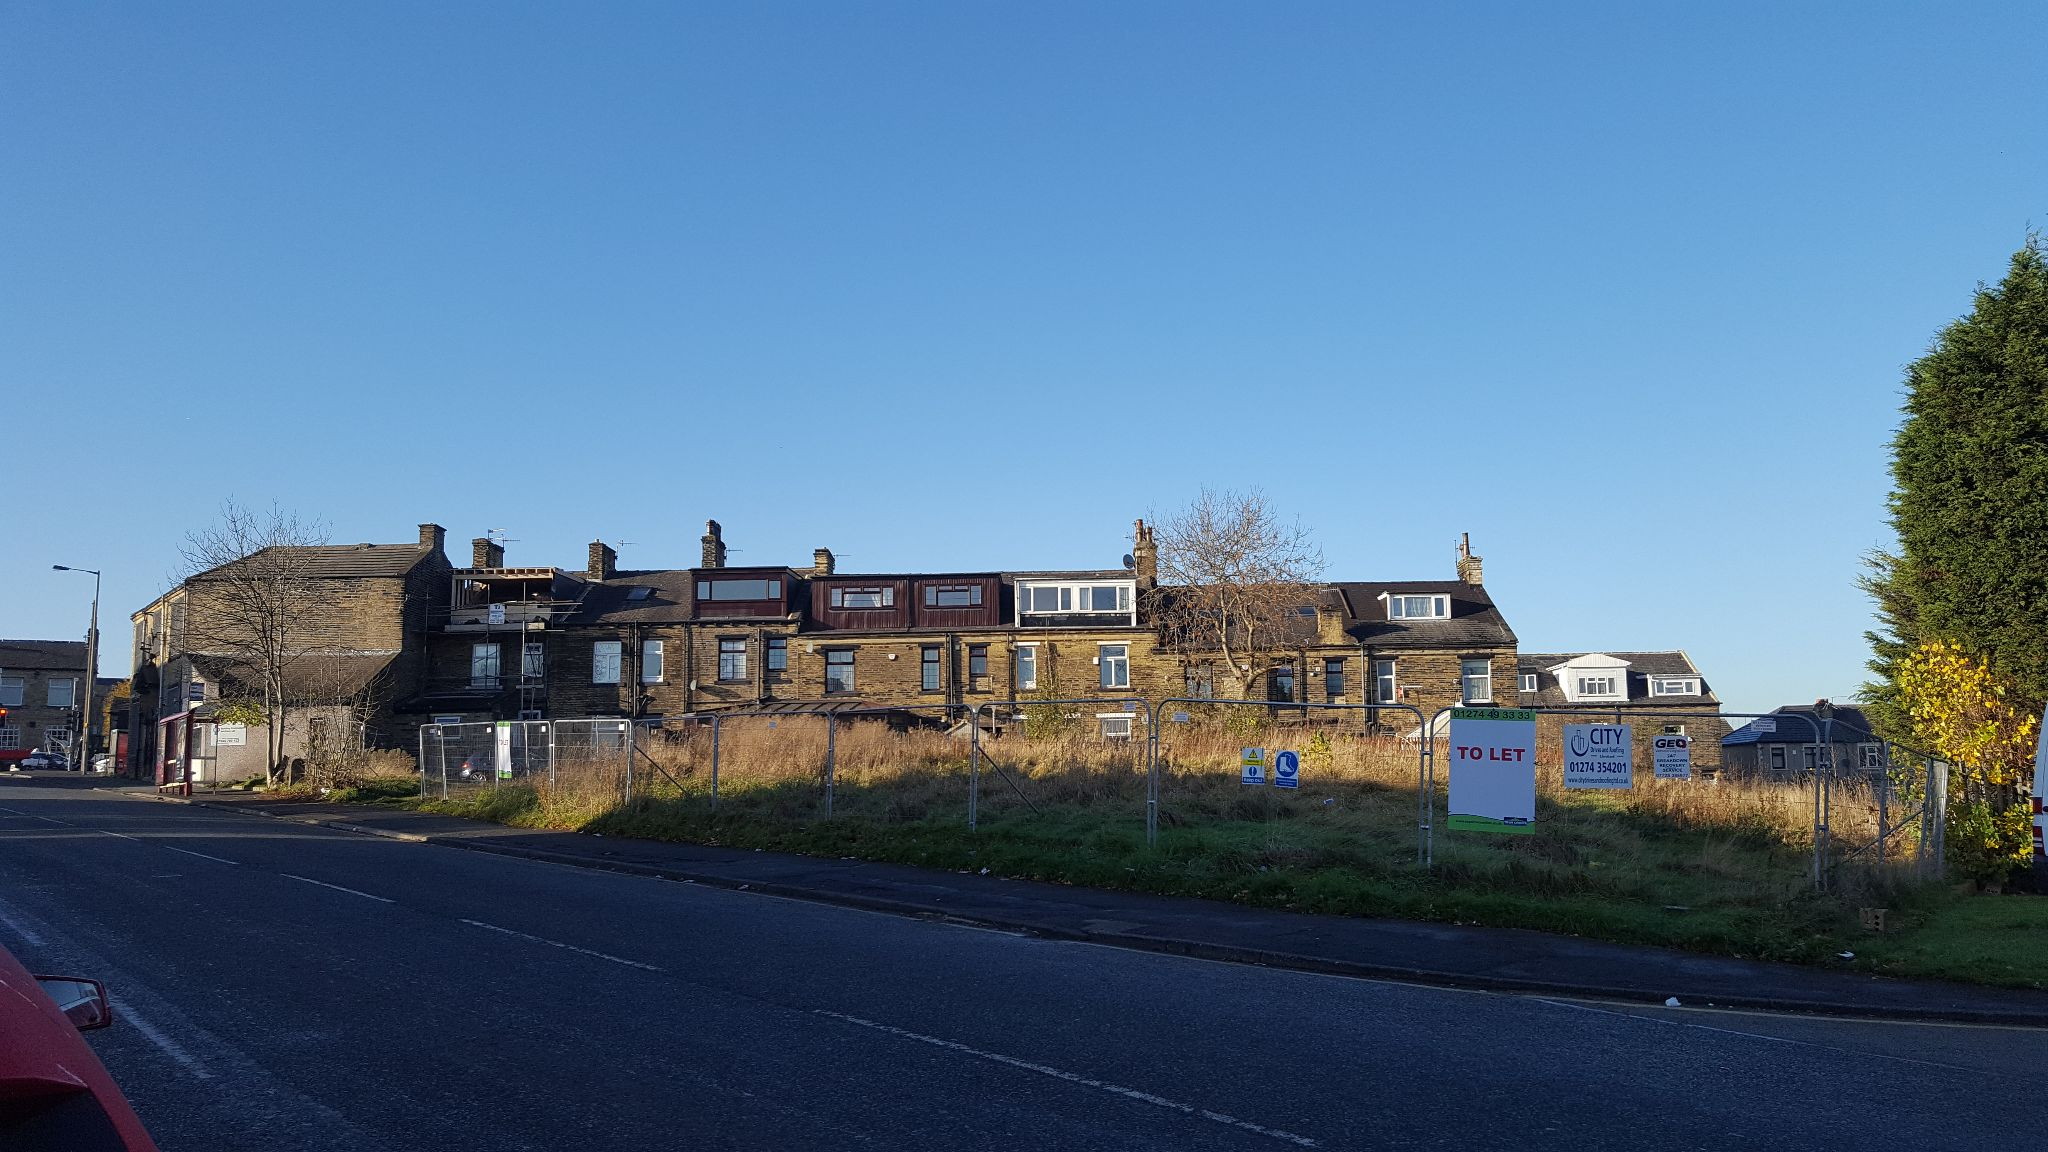 Land To Let in Bradford - Photograph 2.